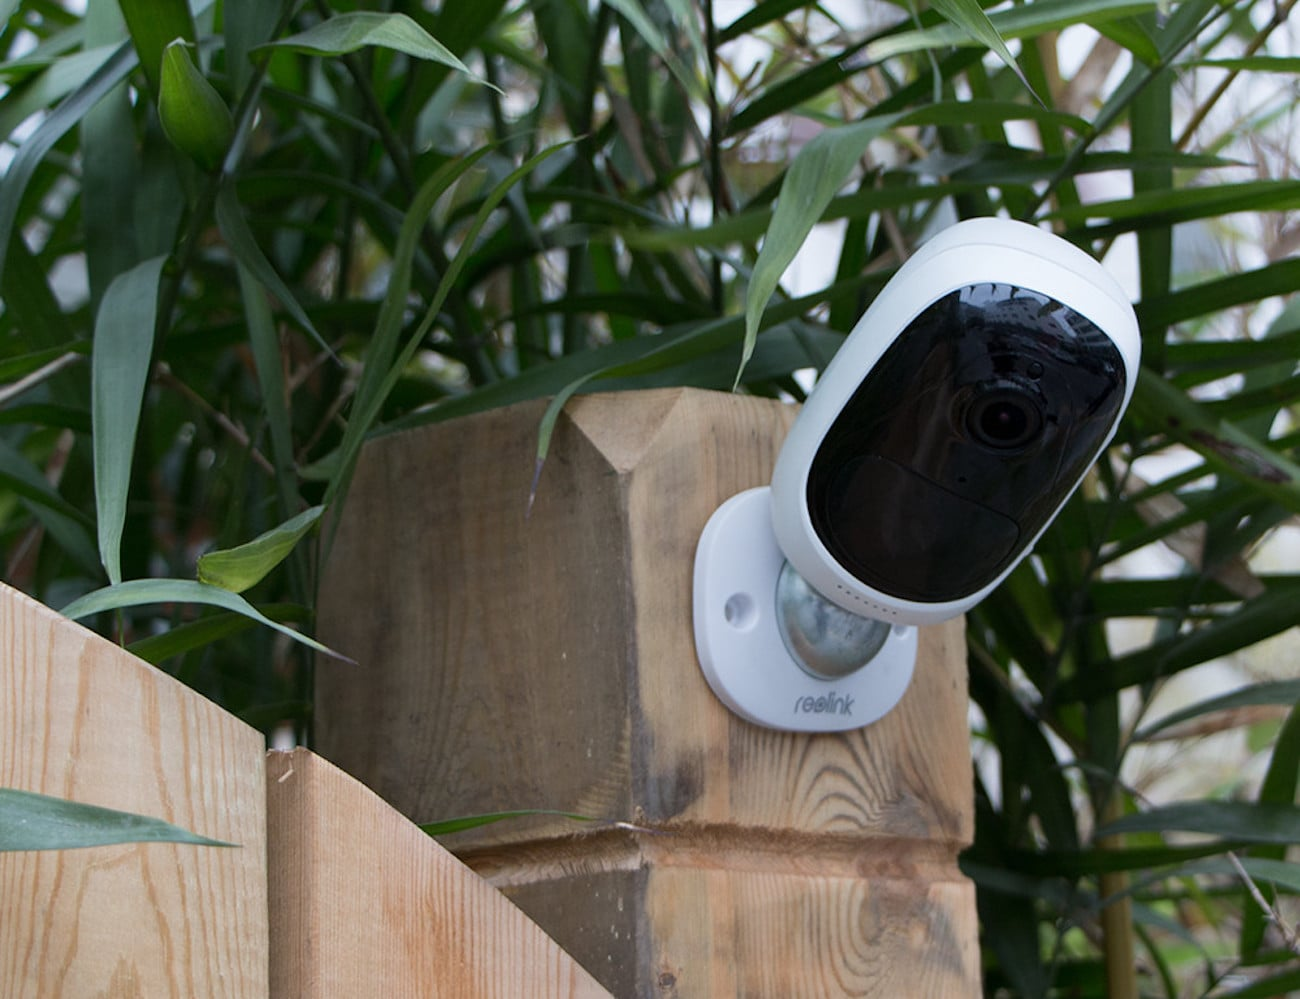 Smart Weatherproof Security Camera